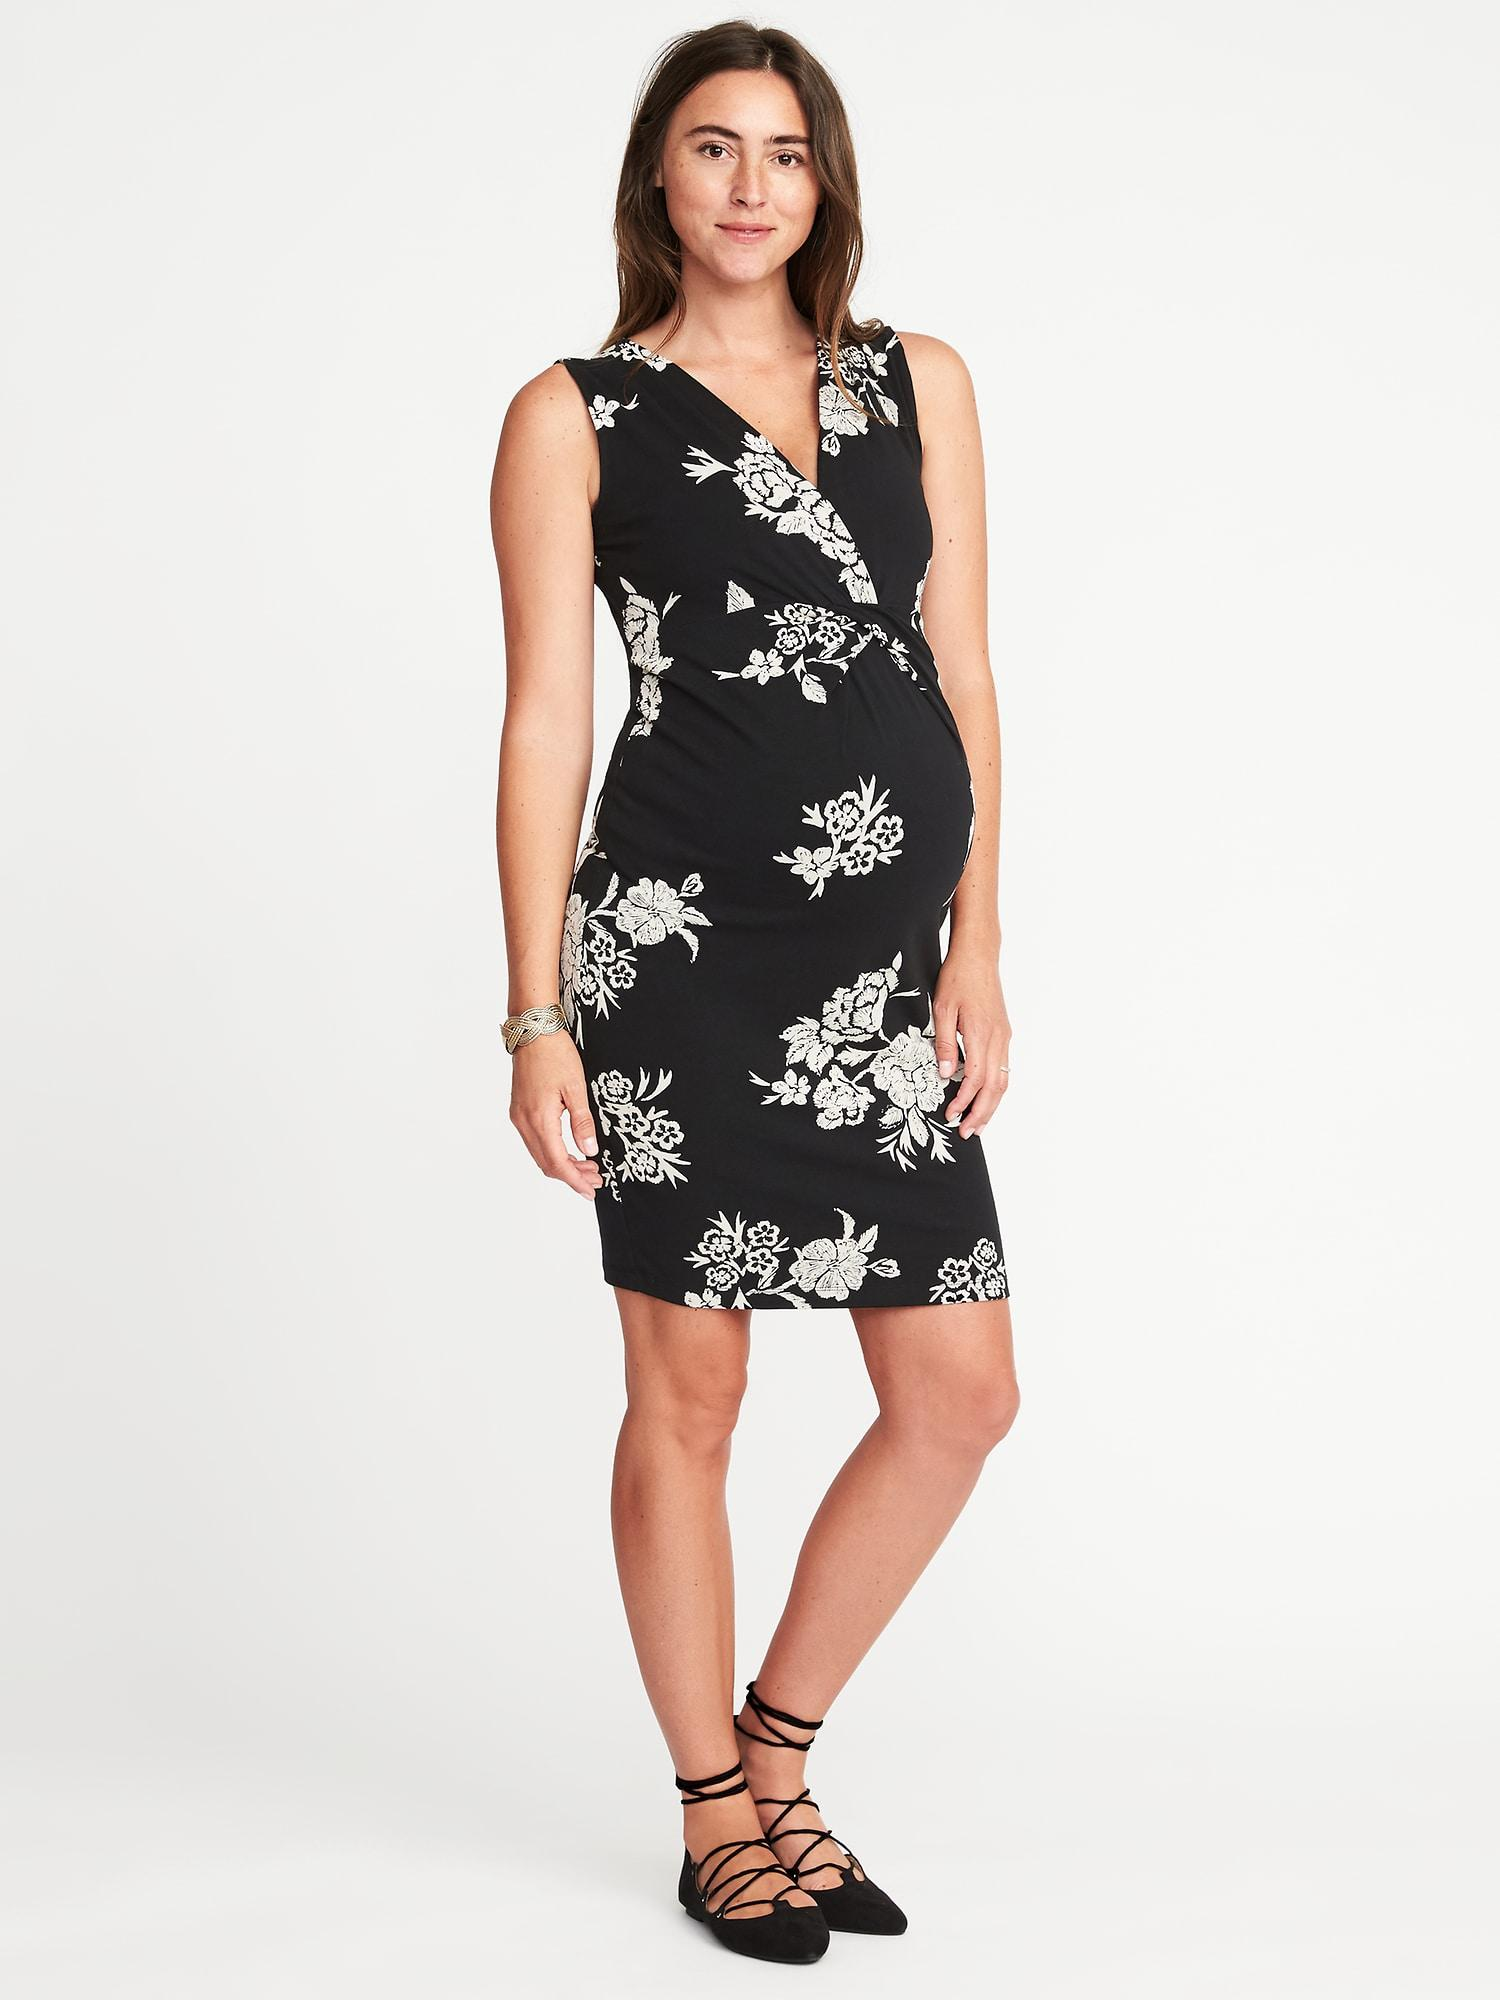 a5e5f522221 Lyst - Old Navy Maternity Sleeveless Cross-front Bodycon Dress in Black